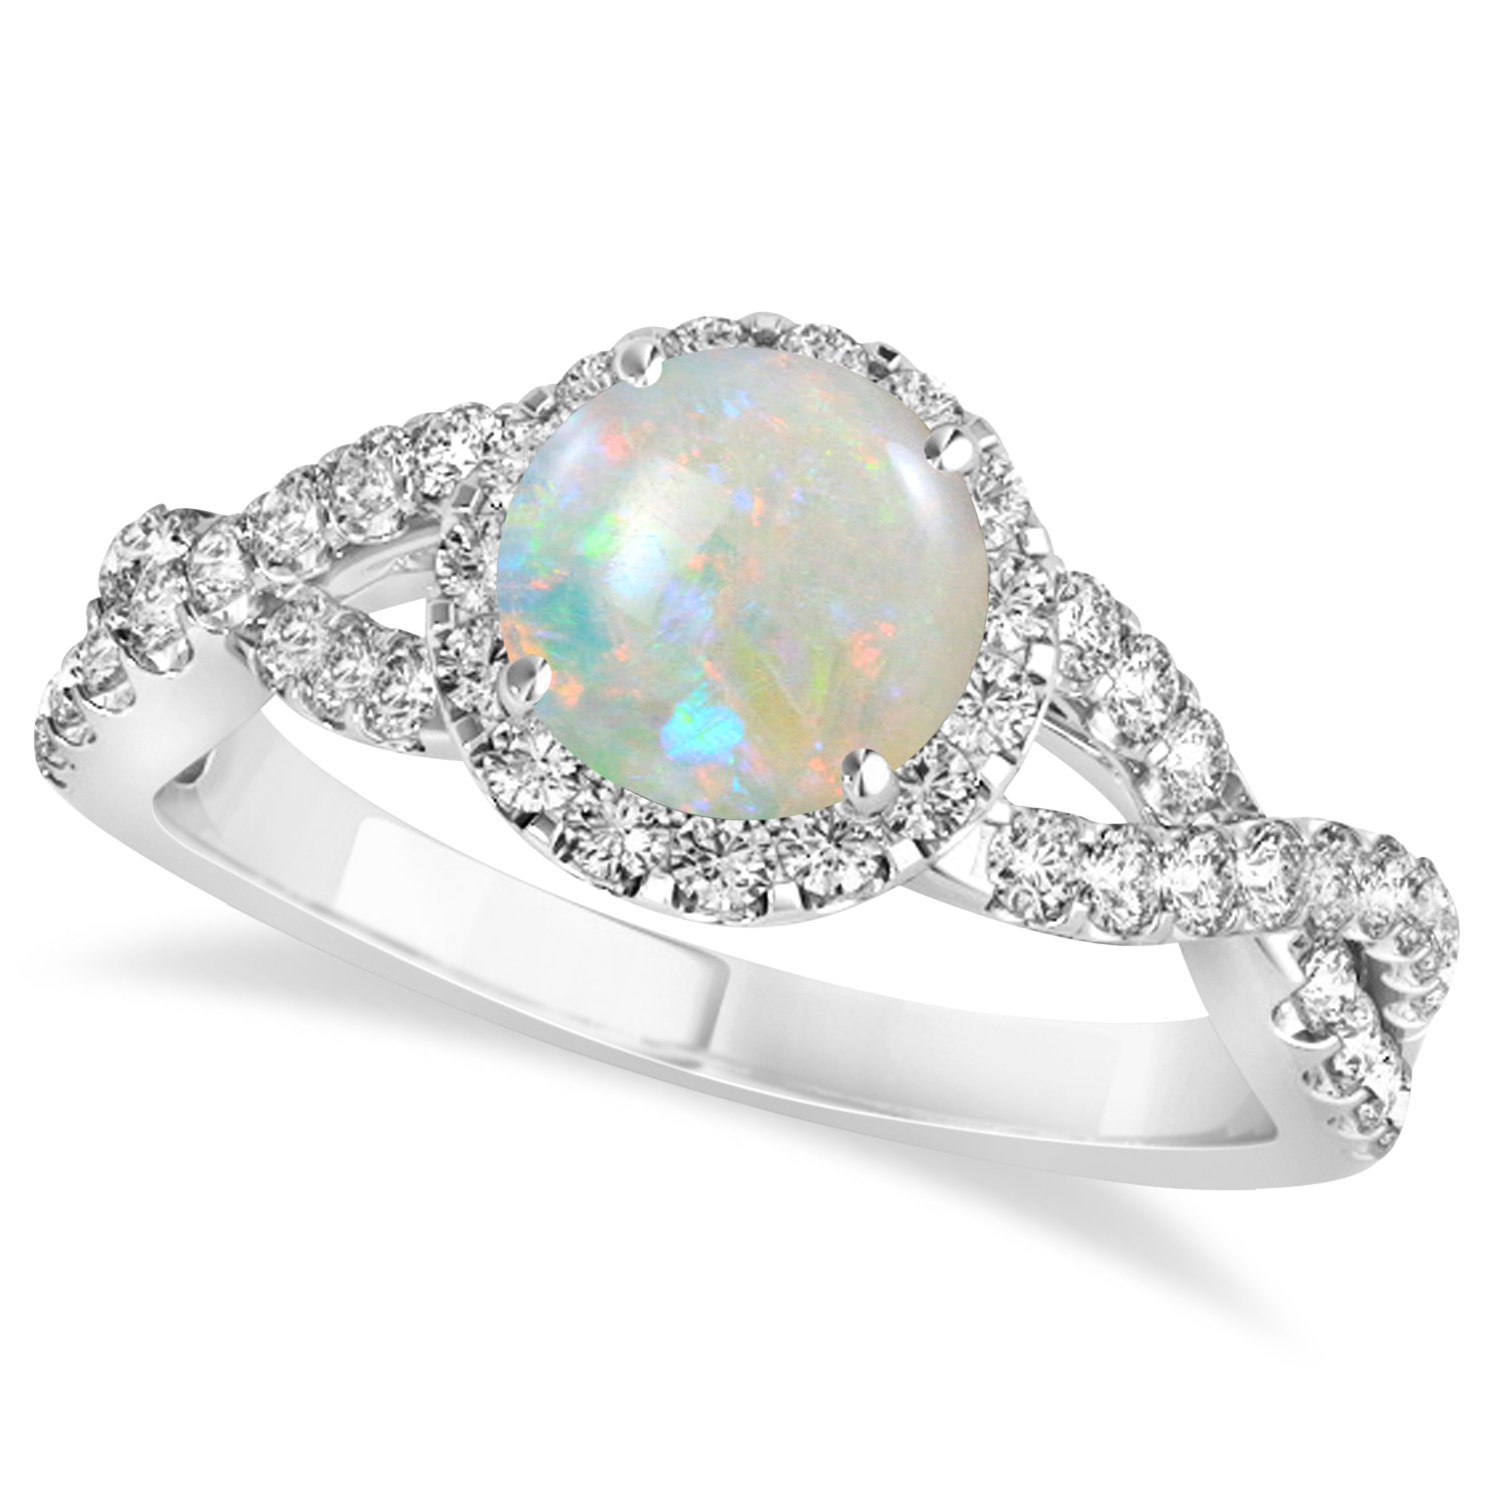 Opal & Diamond Twisted Engagement Ring 14k White Gold 1